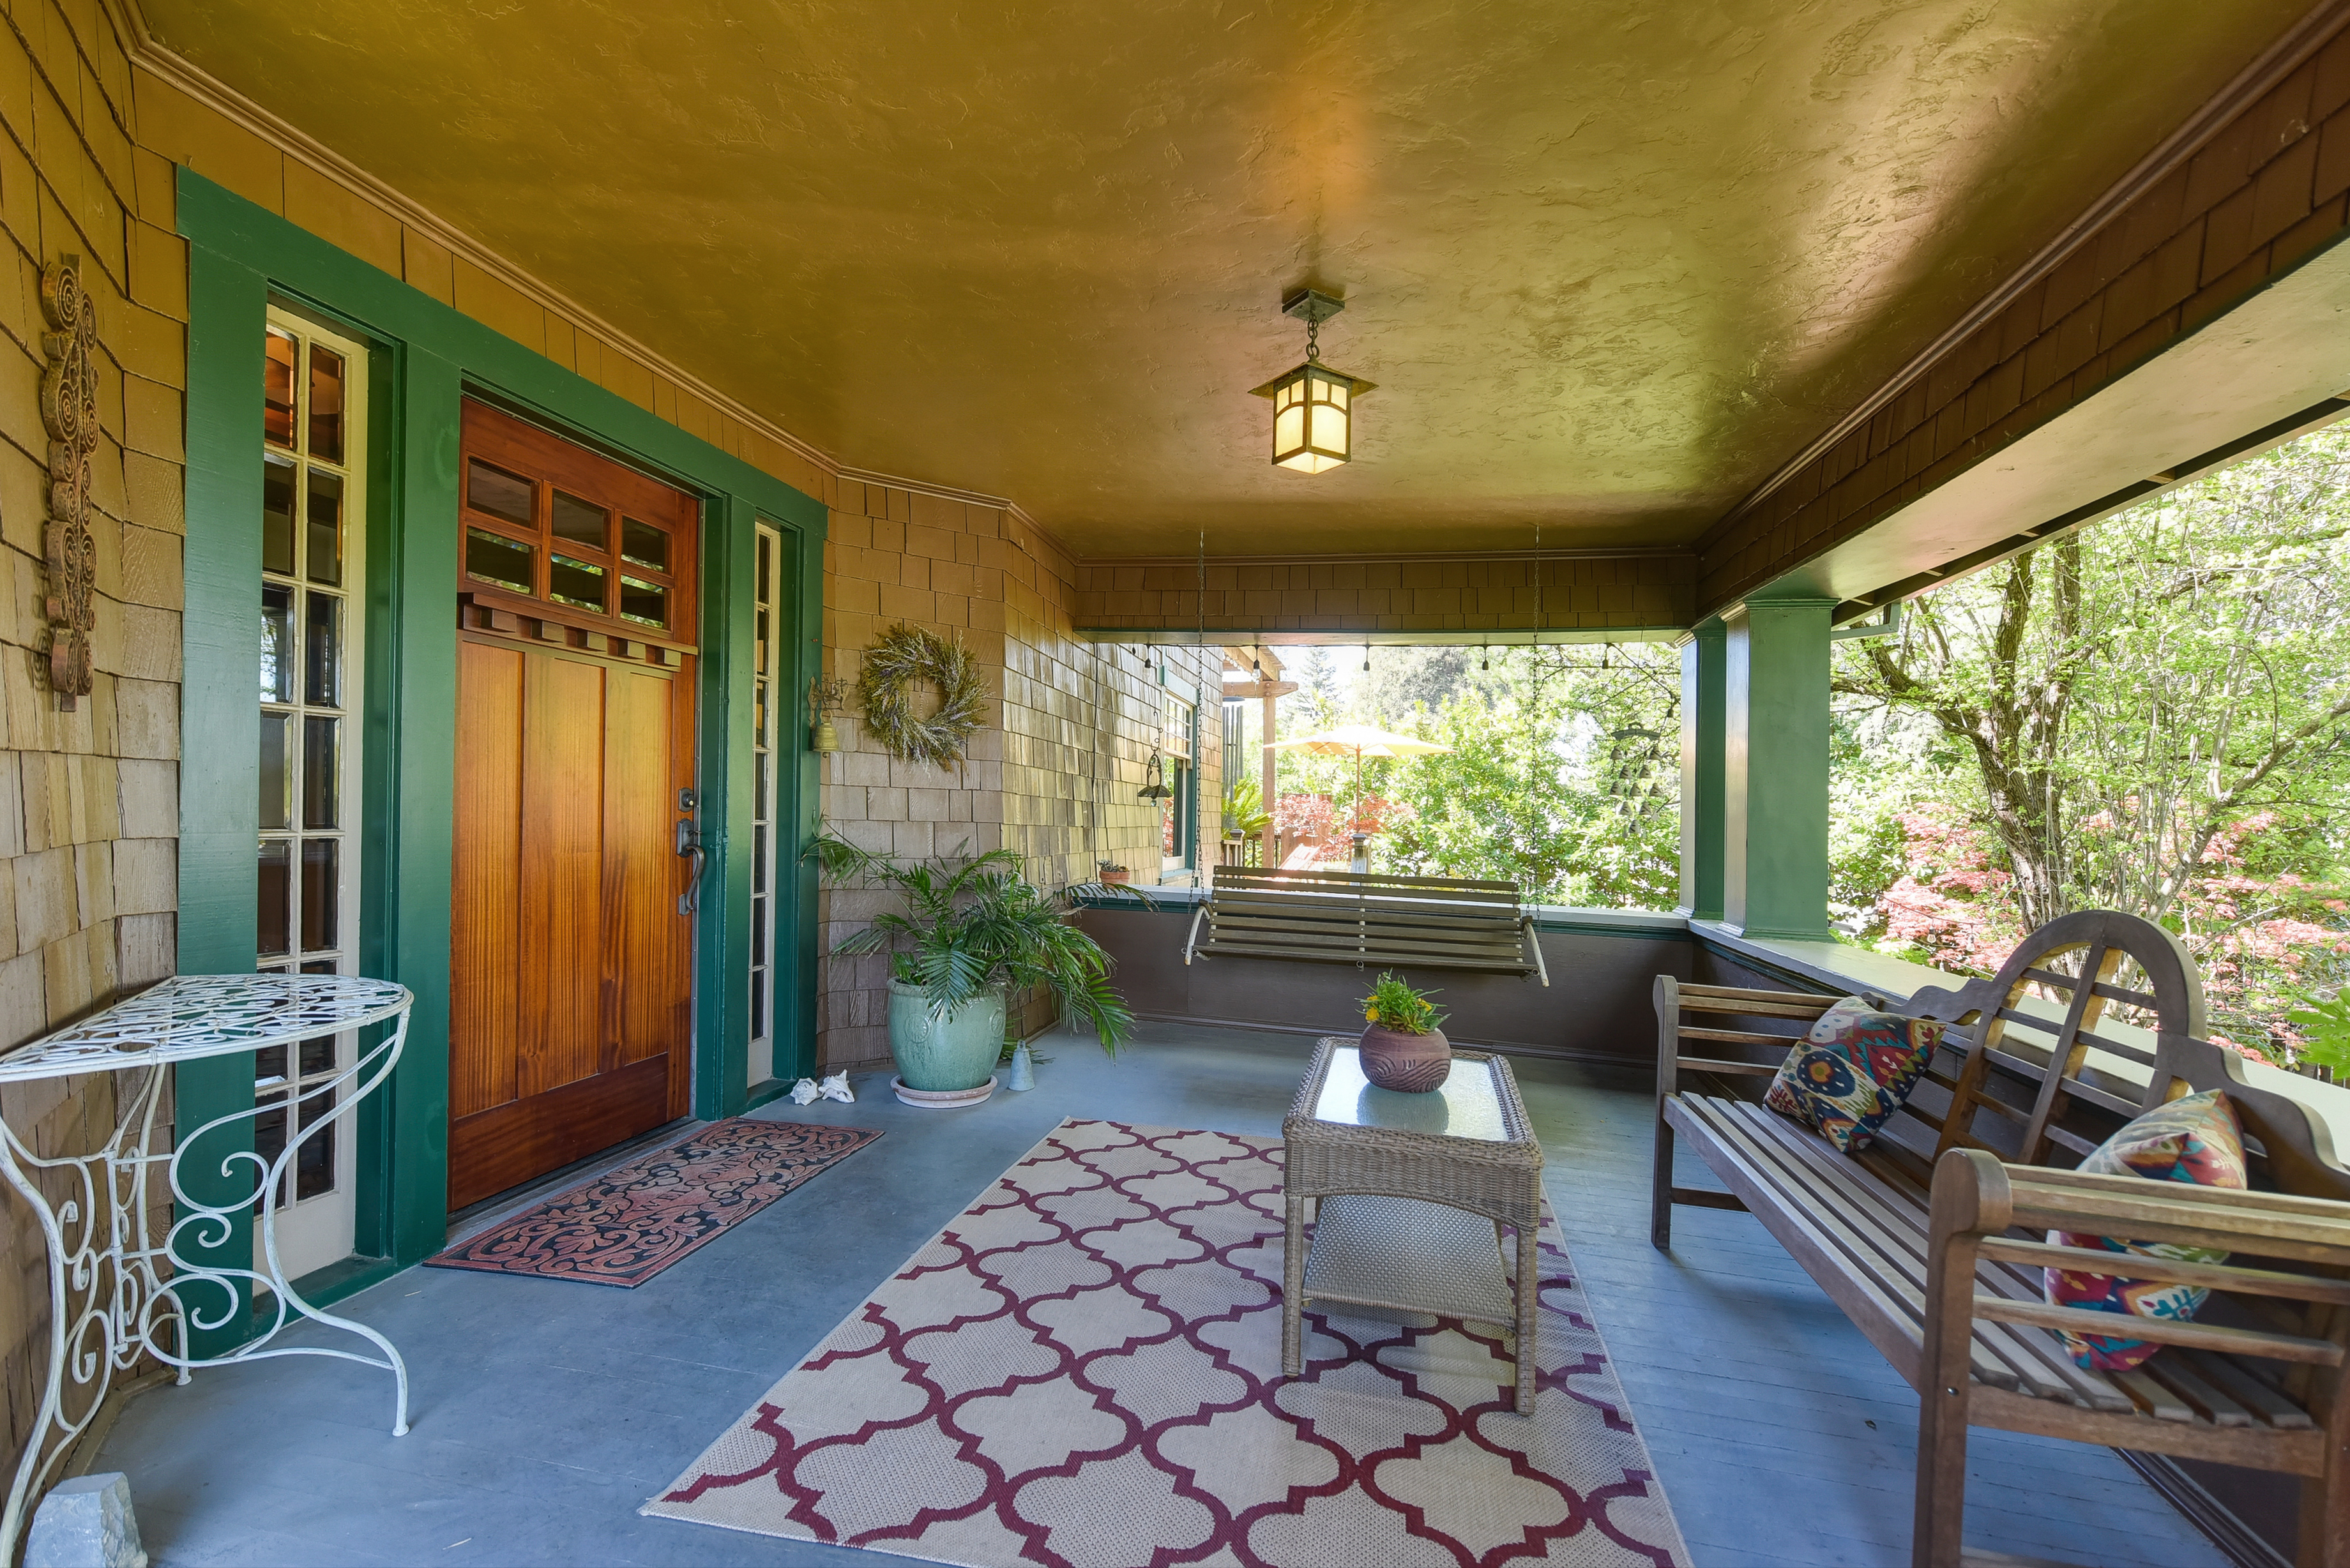 248 Cherry Ave, Auburn CA 95603, Front Porch 4